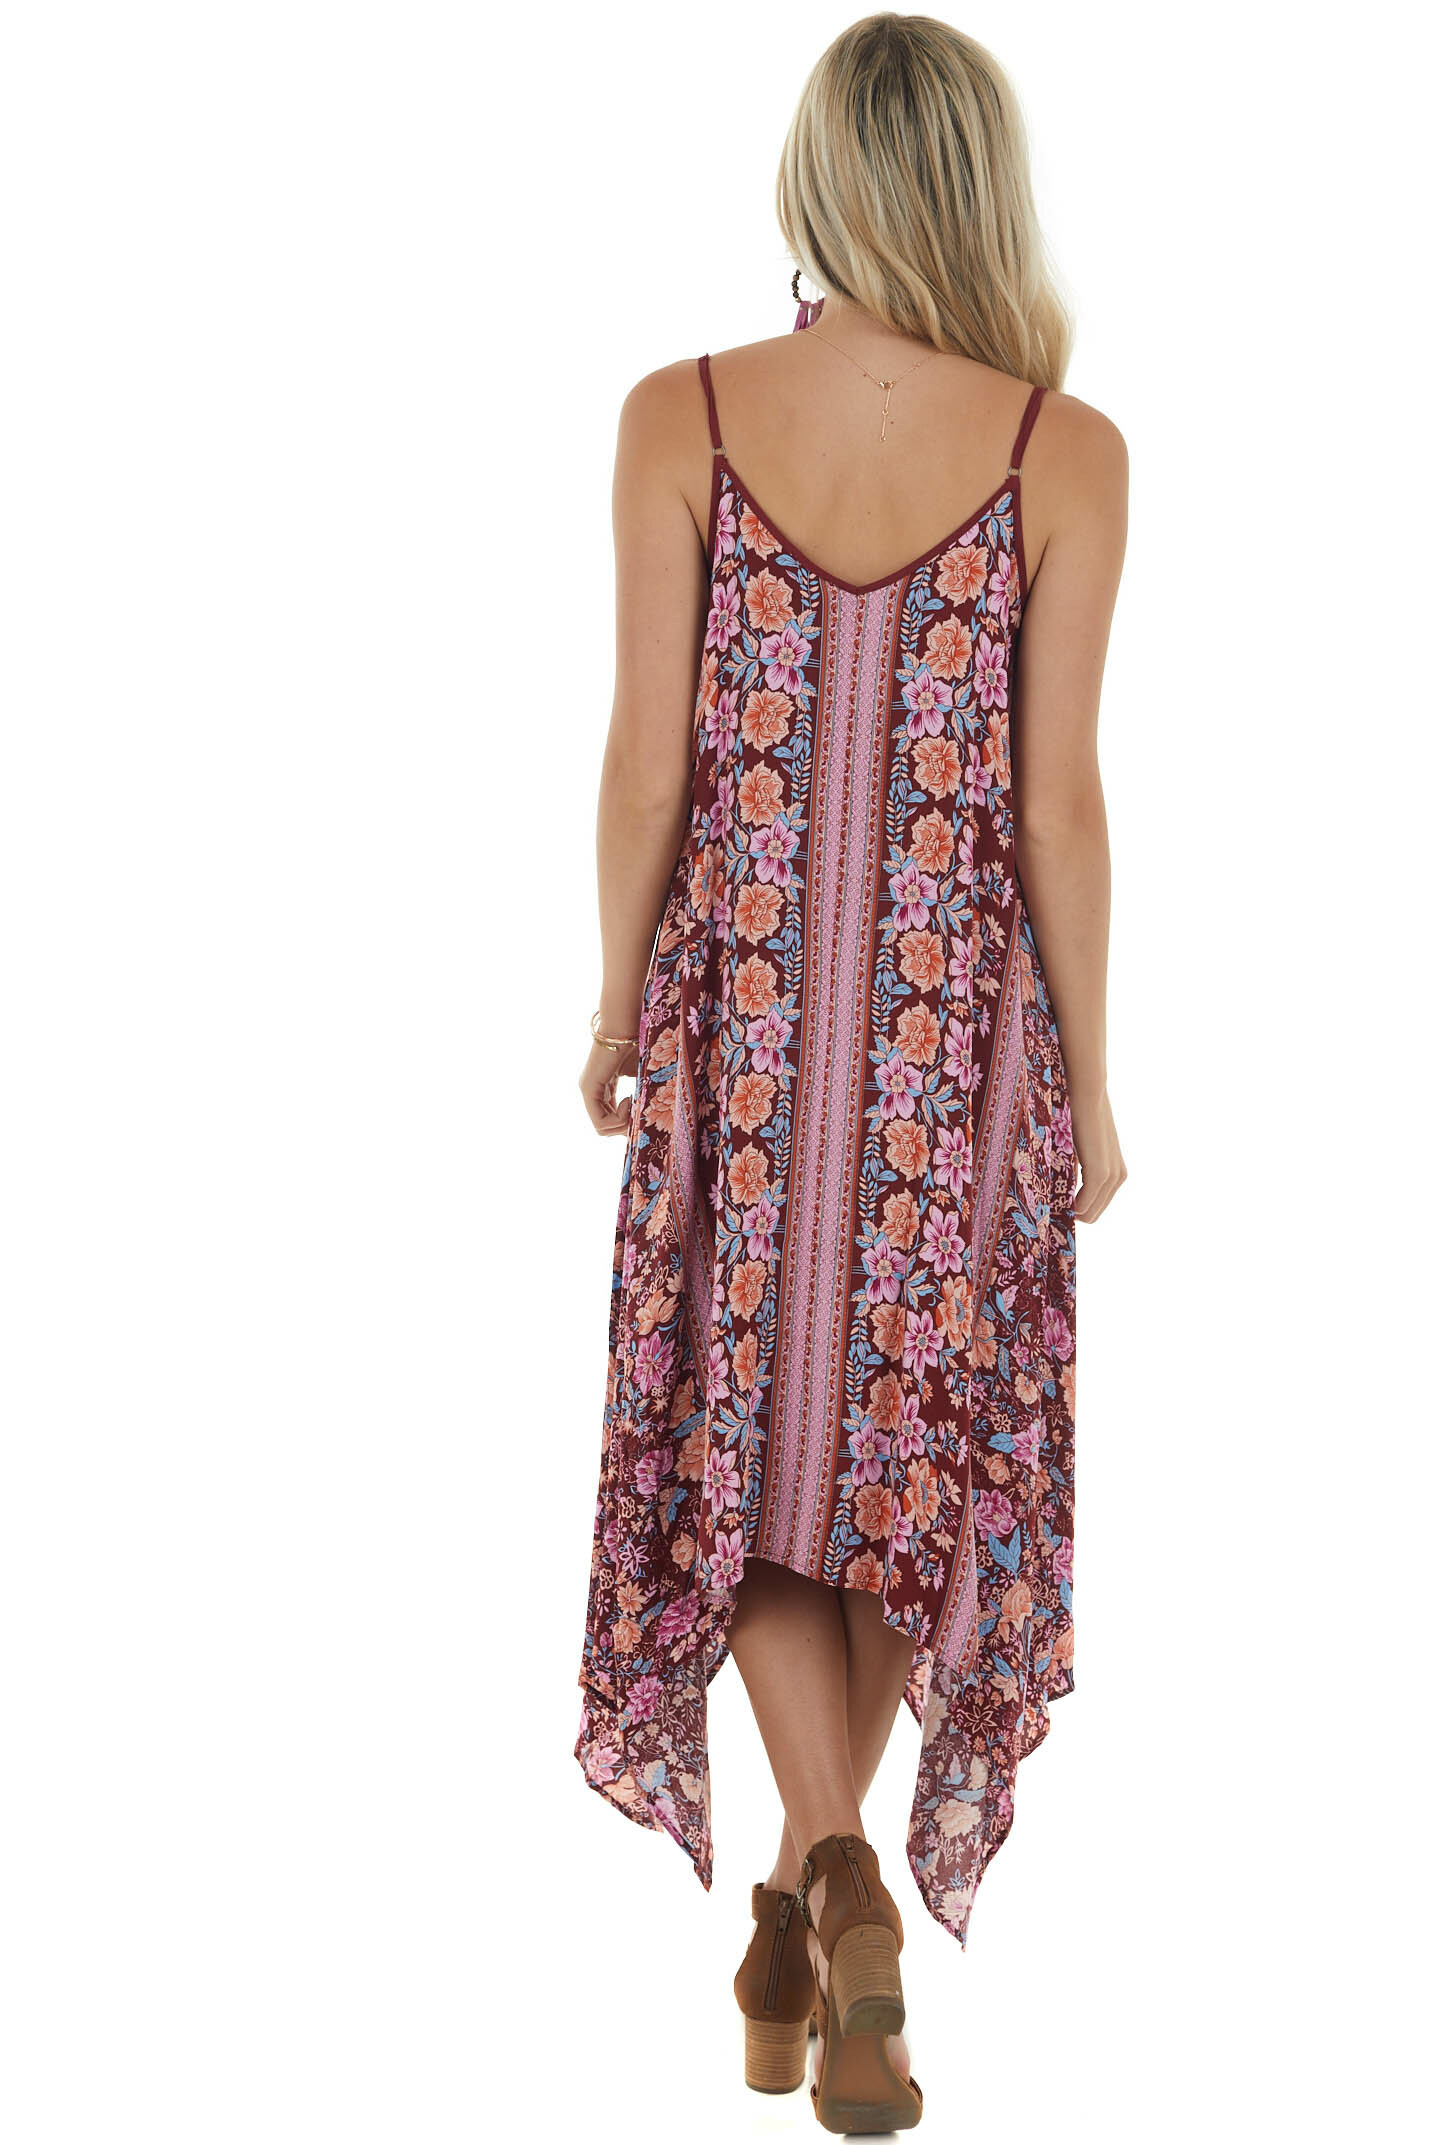 Sangria Floral and Abstract Sleeveless Dress